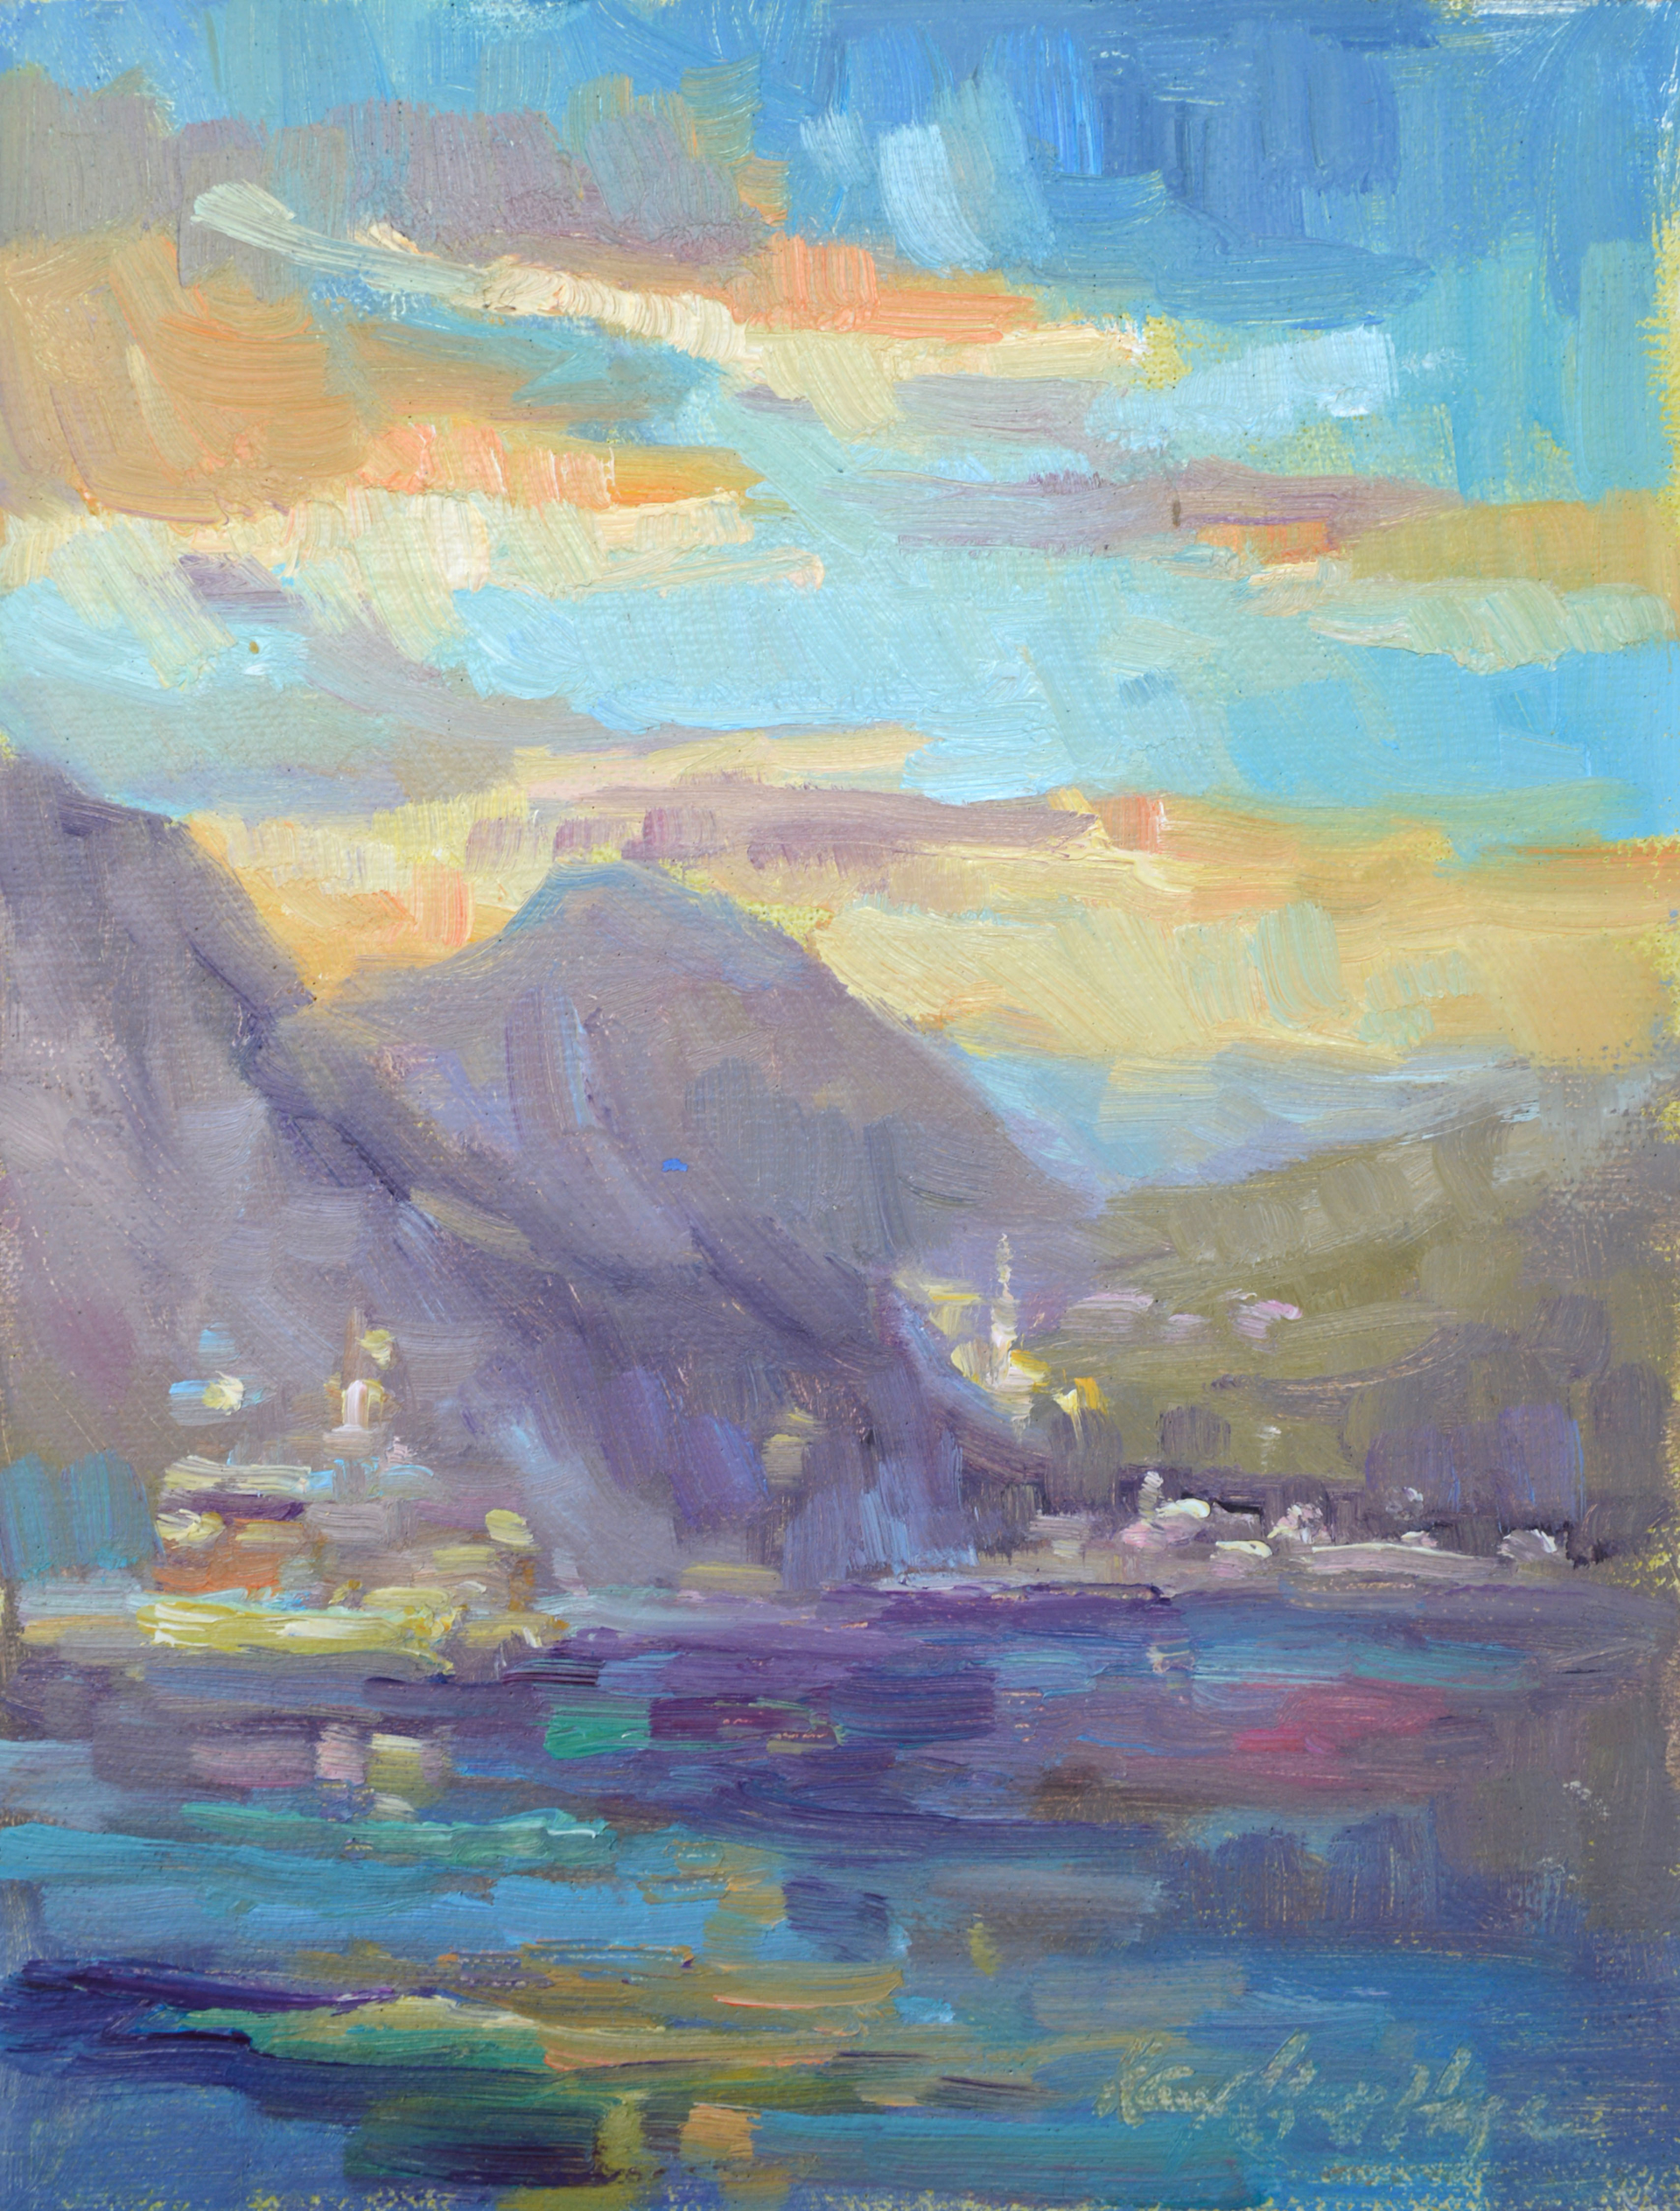 Sunset at Bellagio by Karen Hewitt Hagan